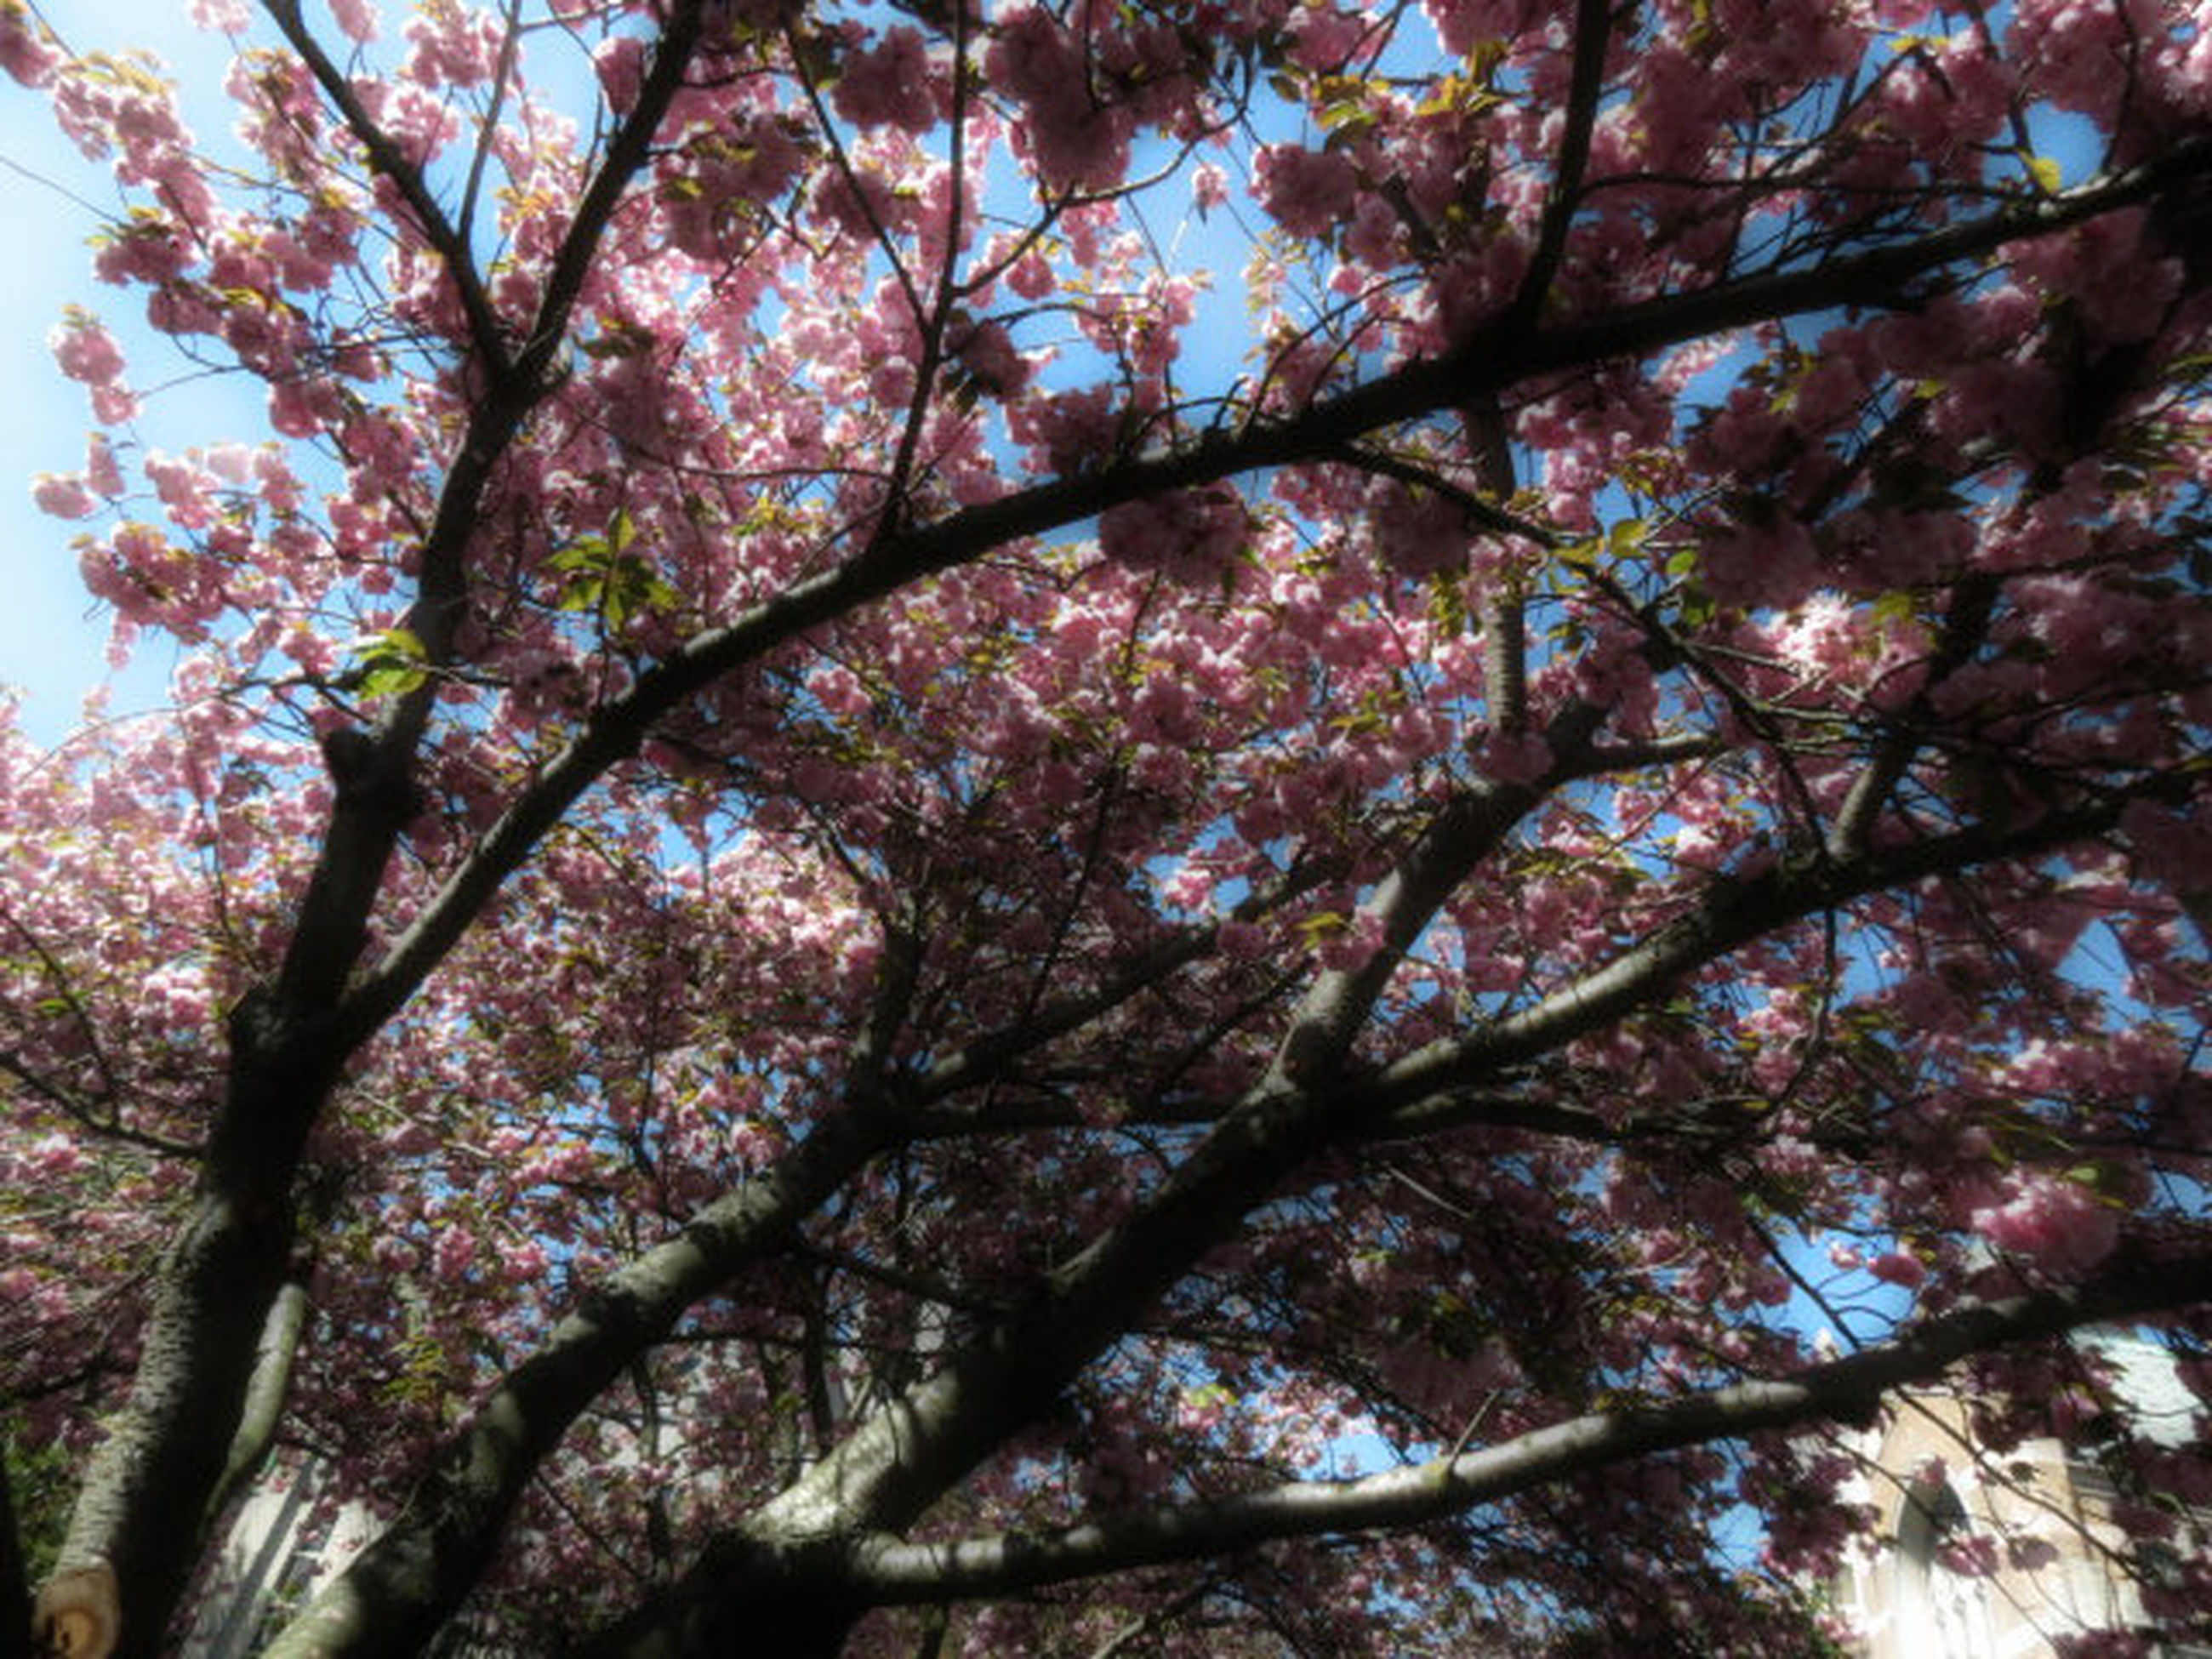 tree, low angle view, branch, flower, growth, freshness, beauty in nature, blossom, nature, cherry blossom, cherry tree, pink color, fragility, springtime, in bloom, day, sky, outdoors, backgrounds, no people